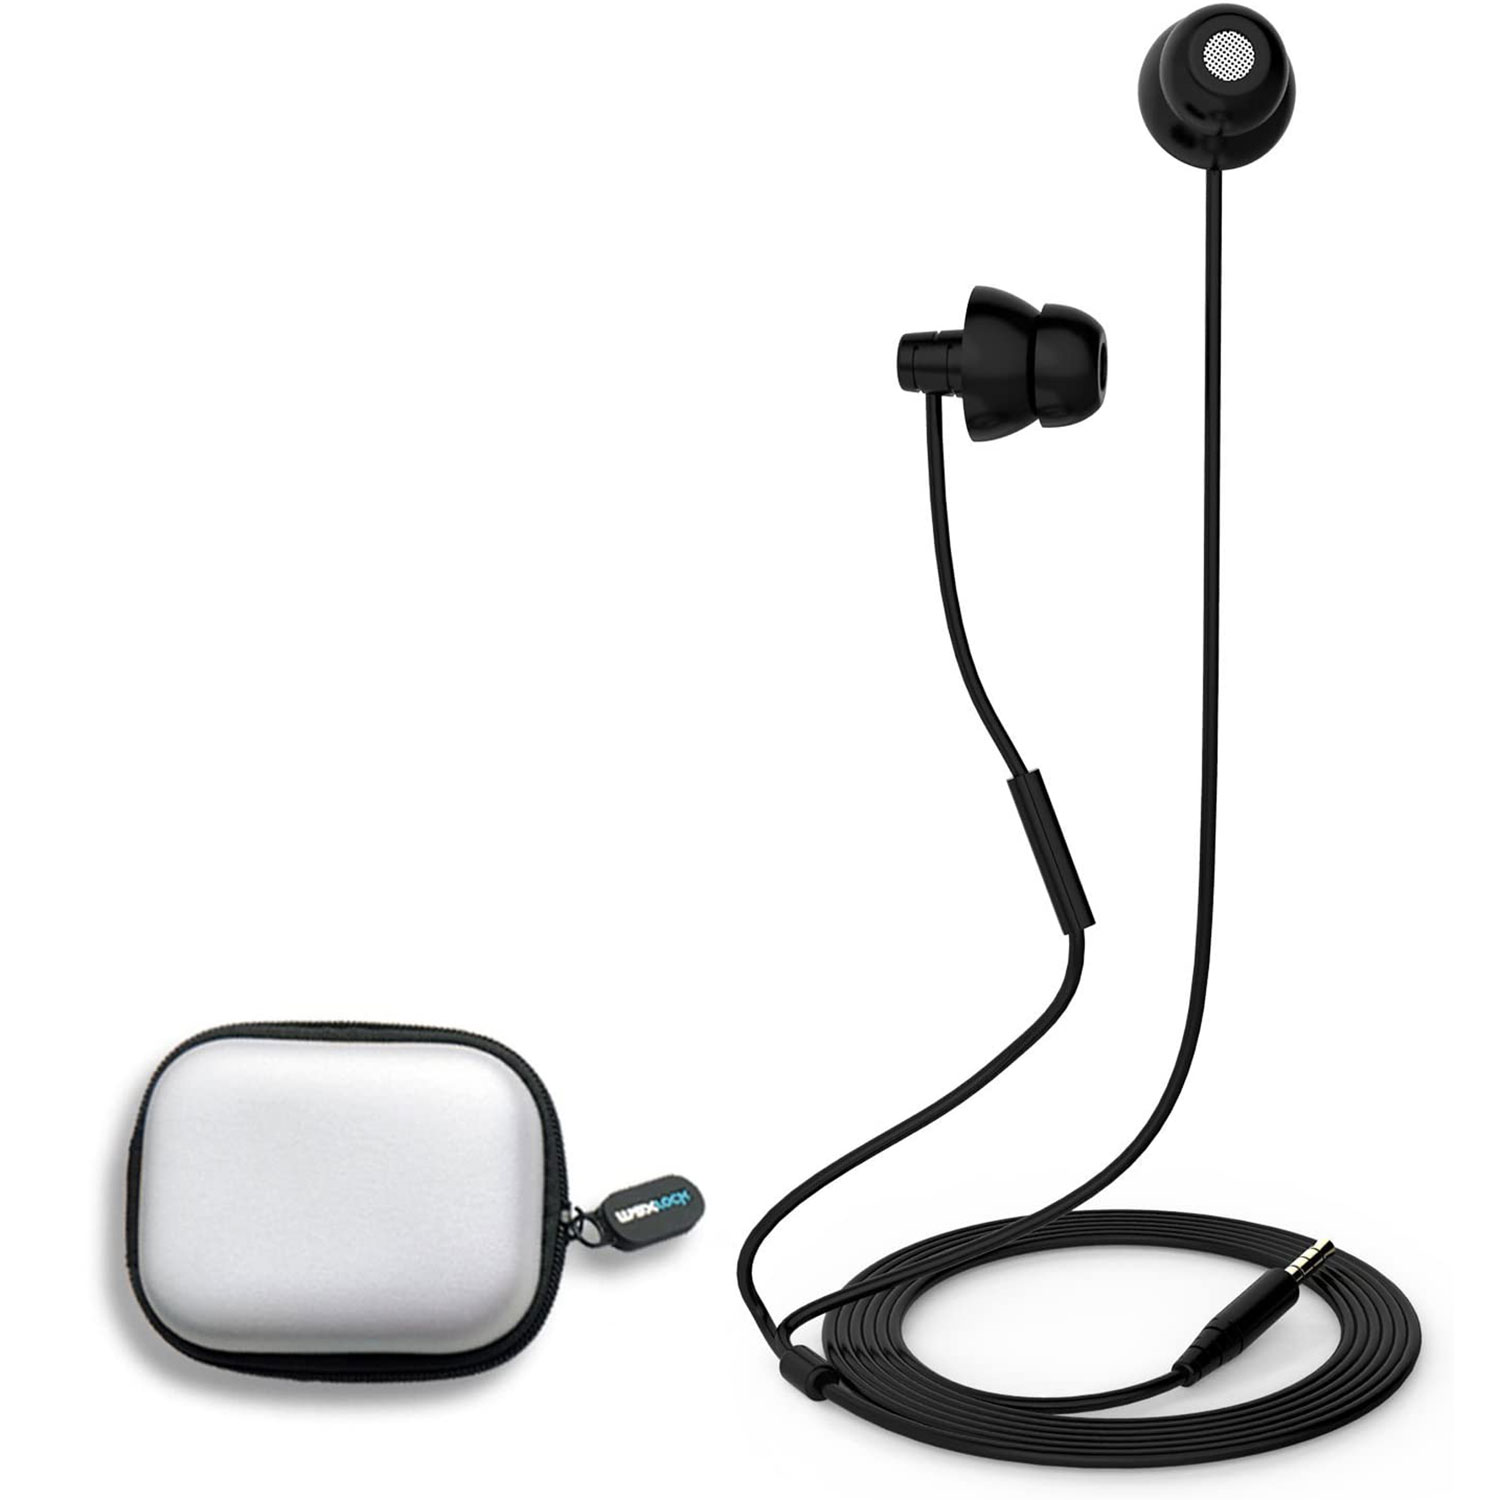 Unique Total Soft Silicon Sleeping Headphones Earplugs Earbuds